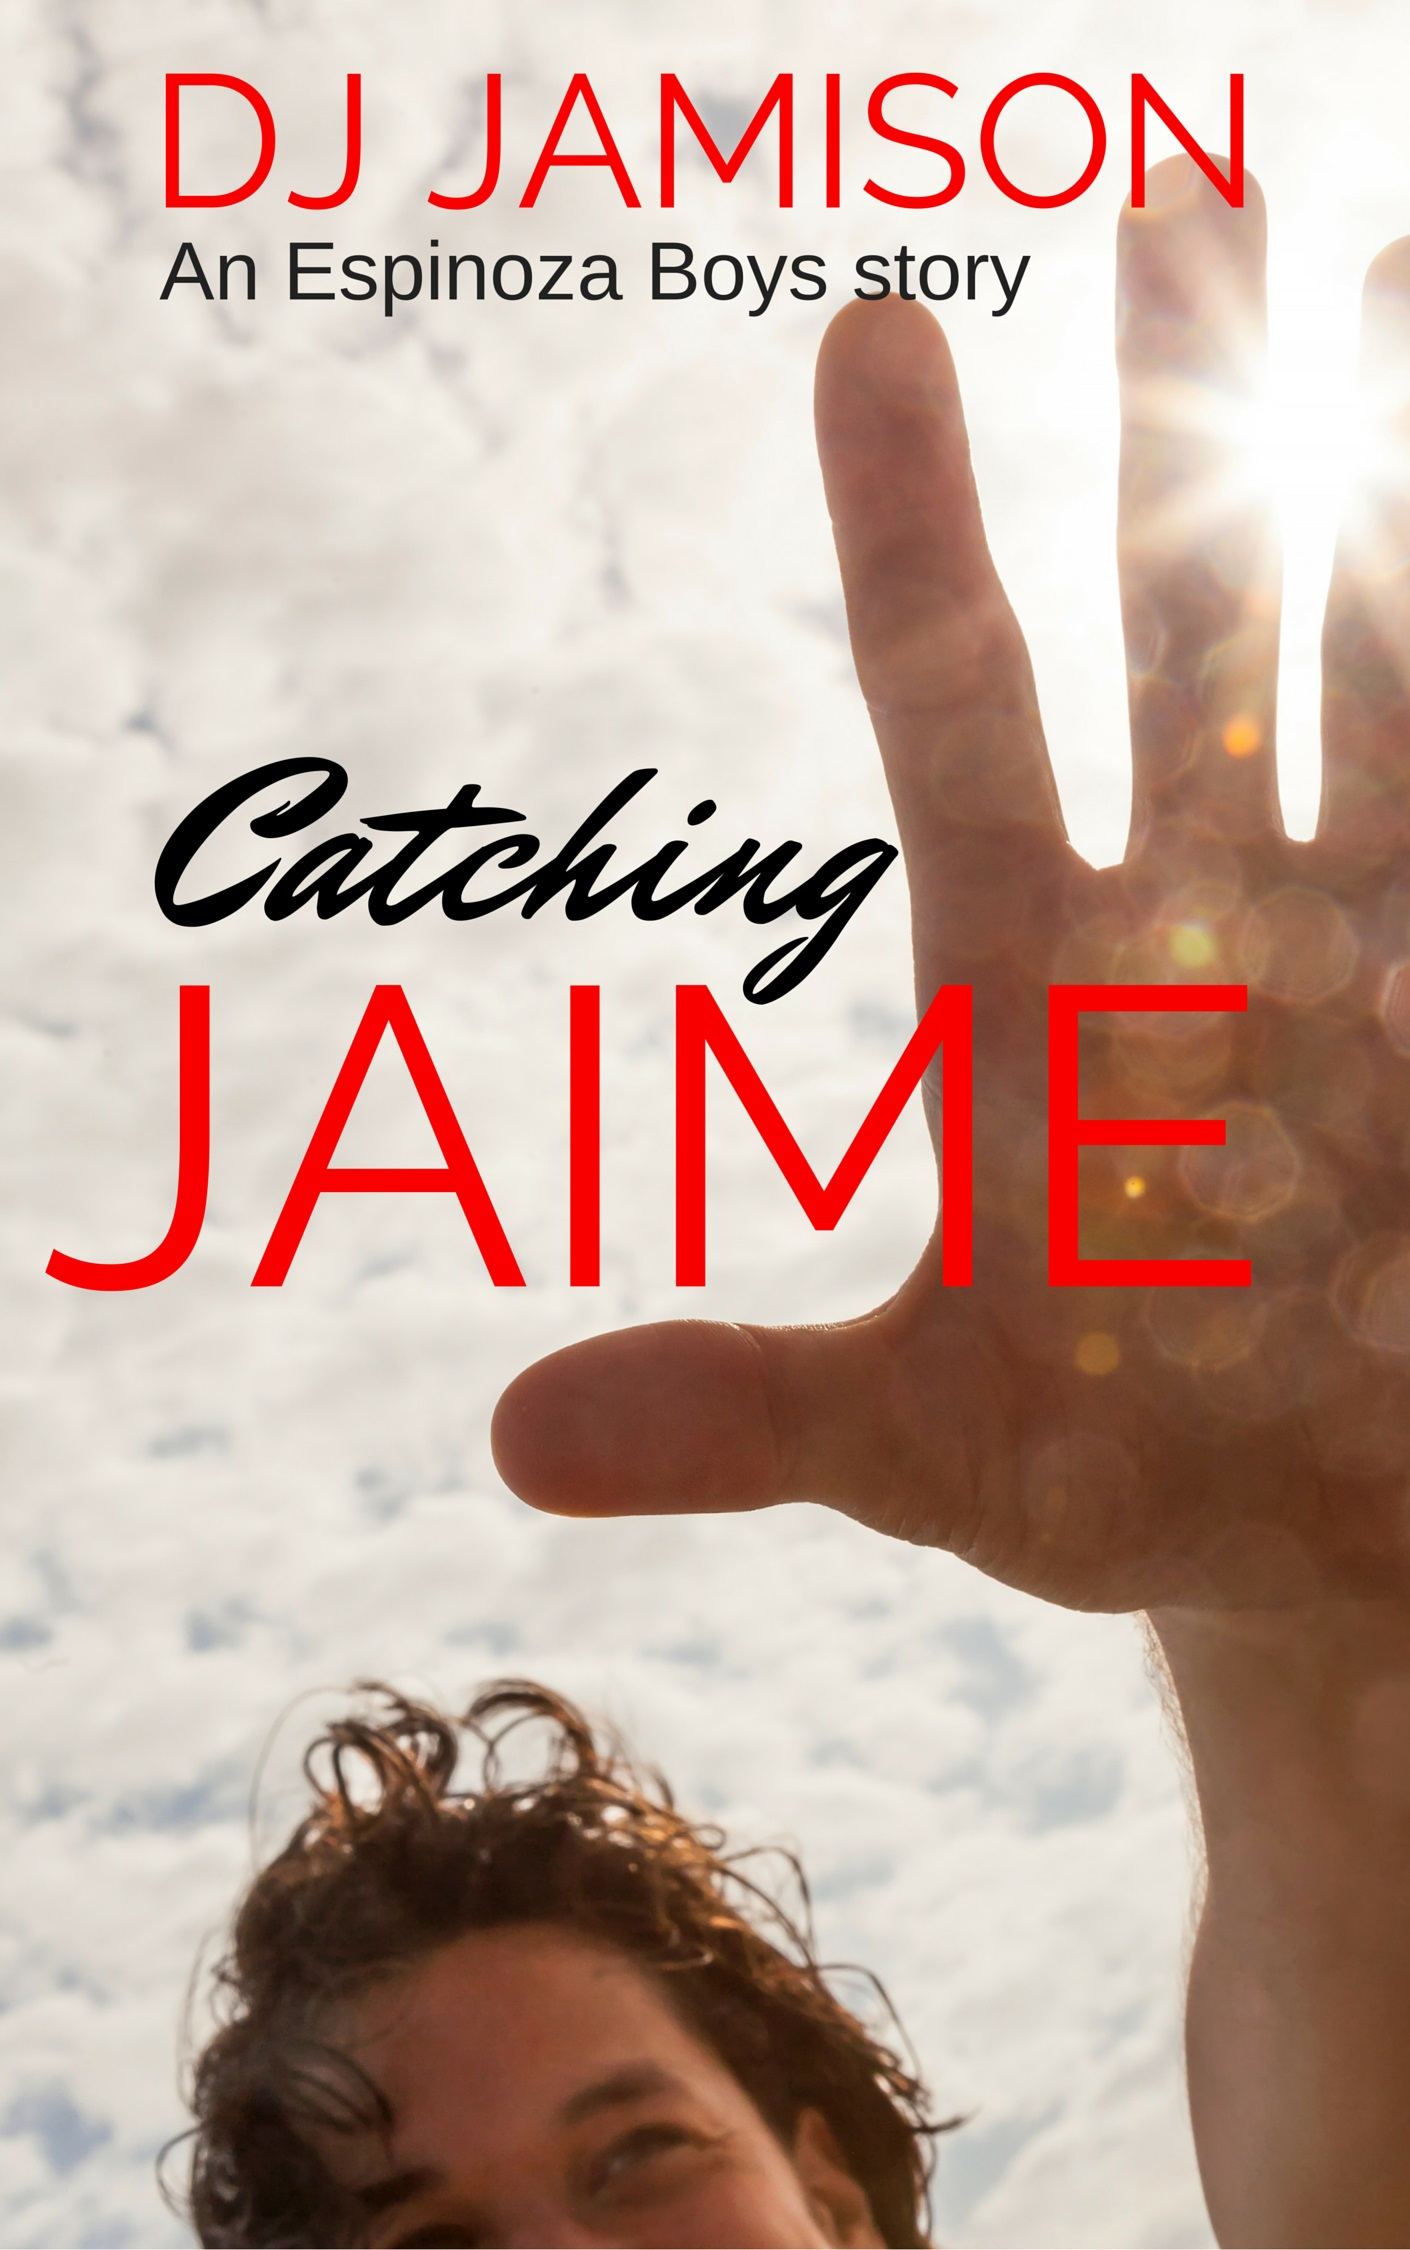 Guest Post and Giveaway: Catching Jaime by D.J. Jamison